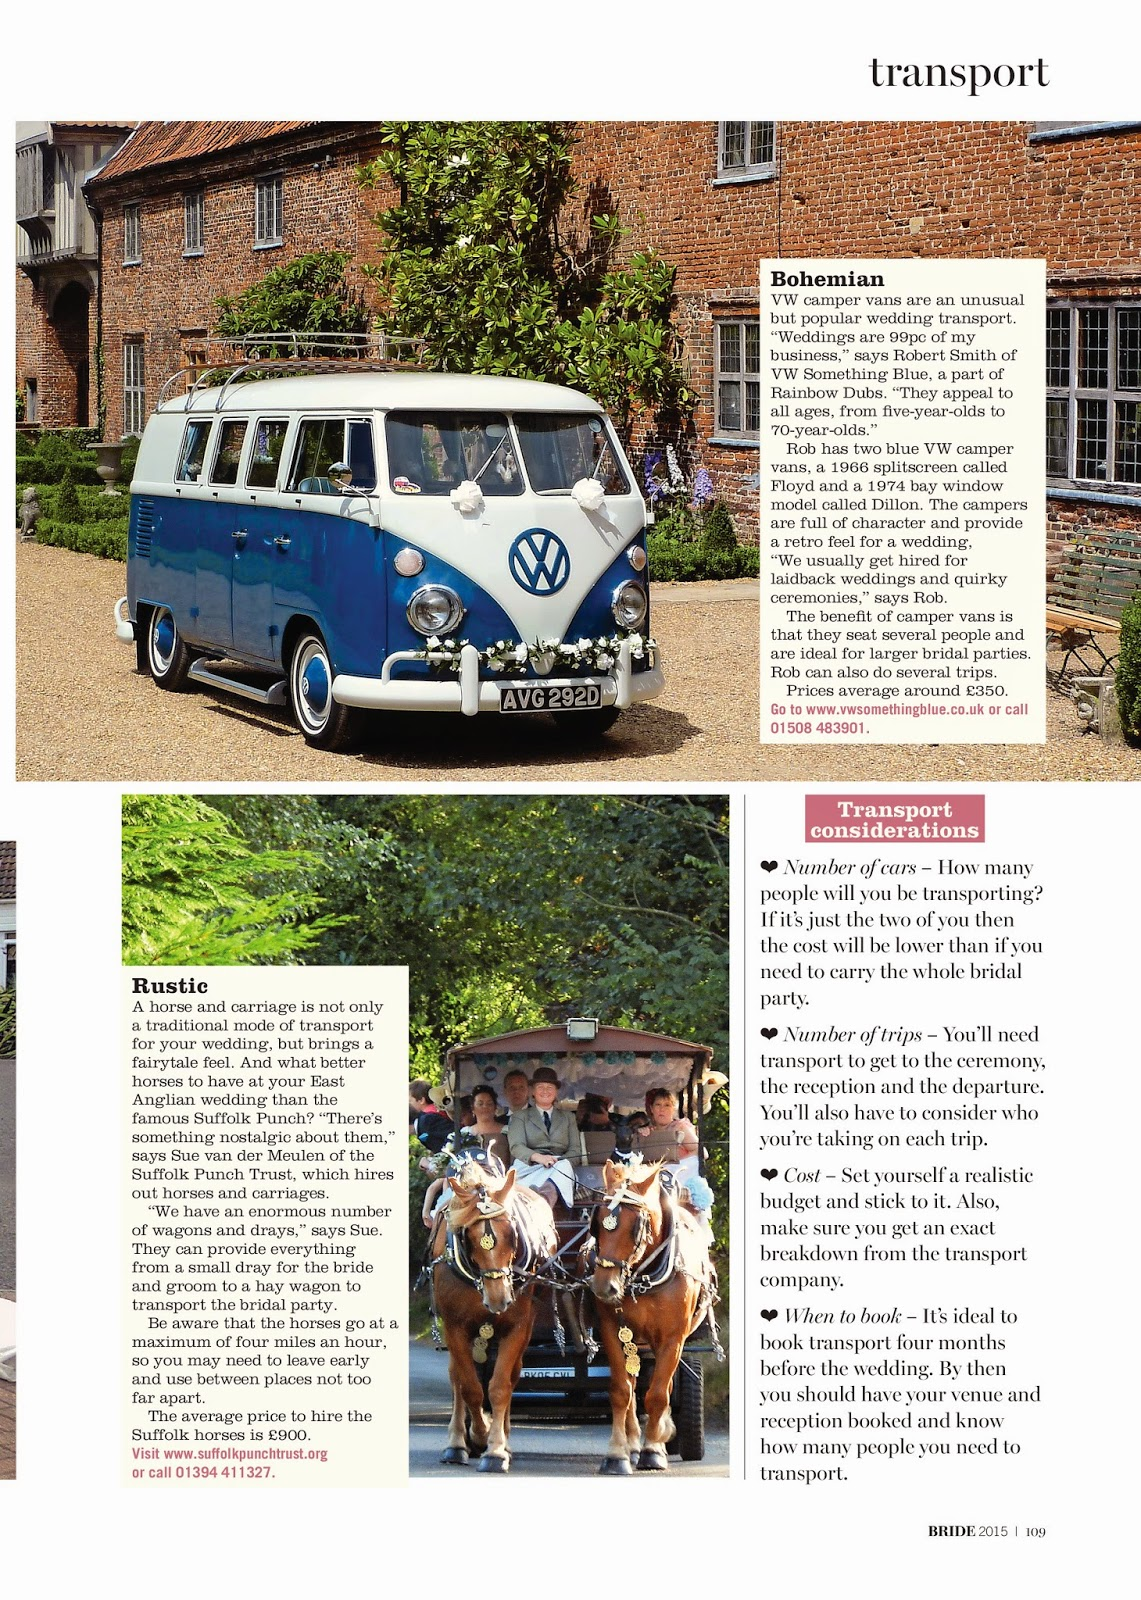 Wedding transport - Bride magazine